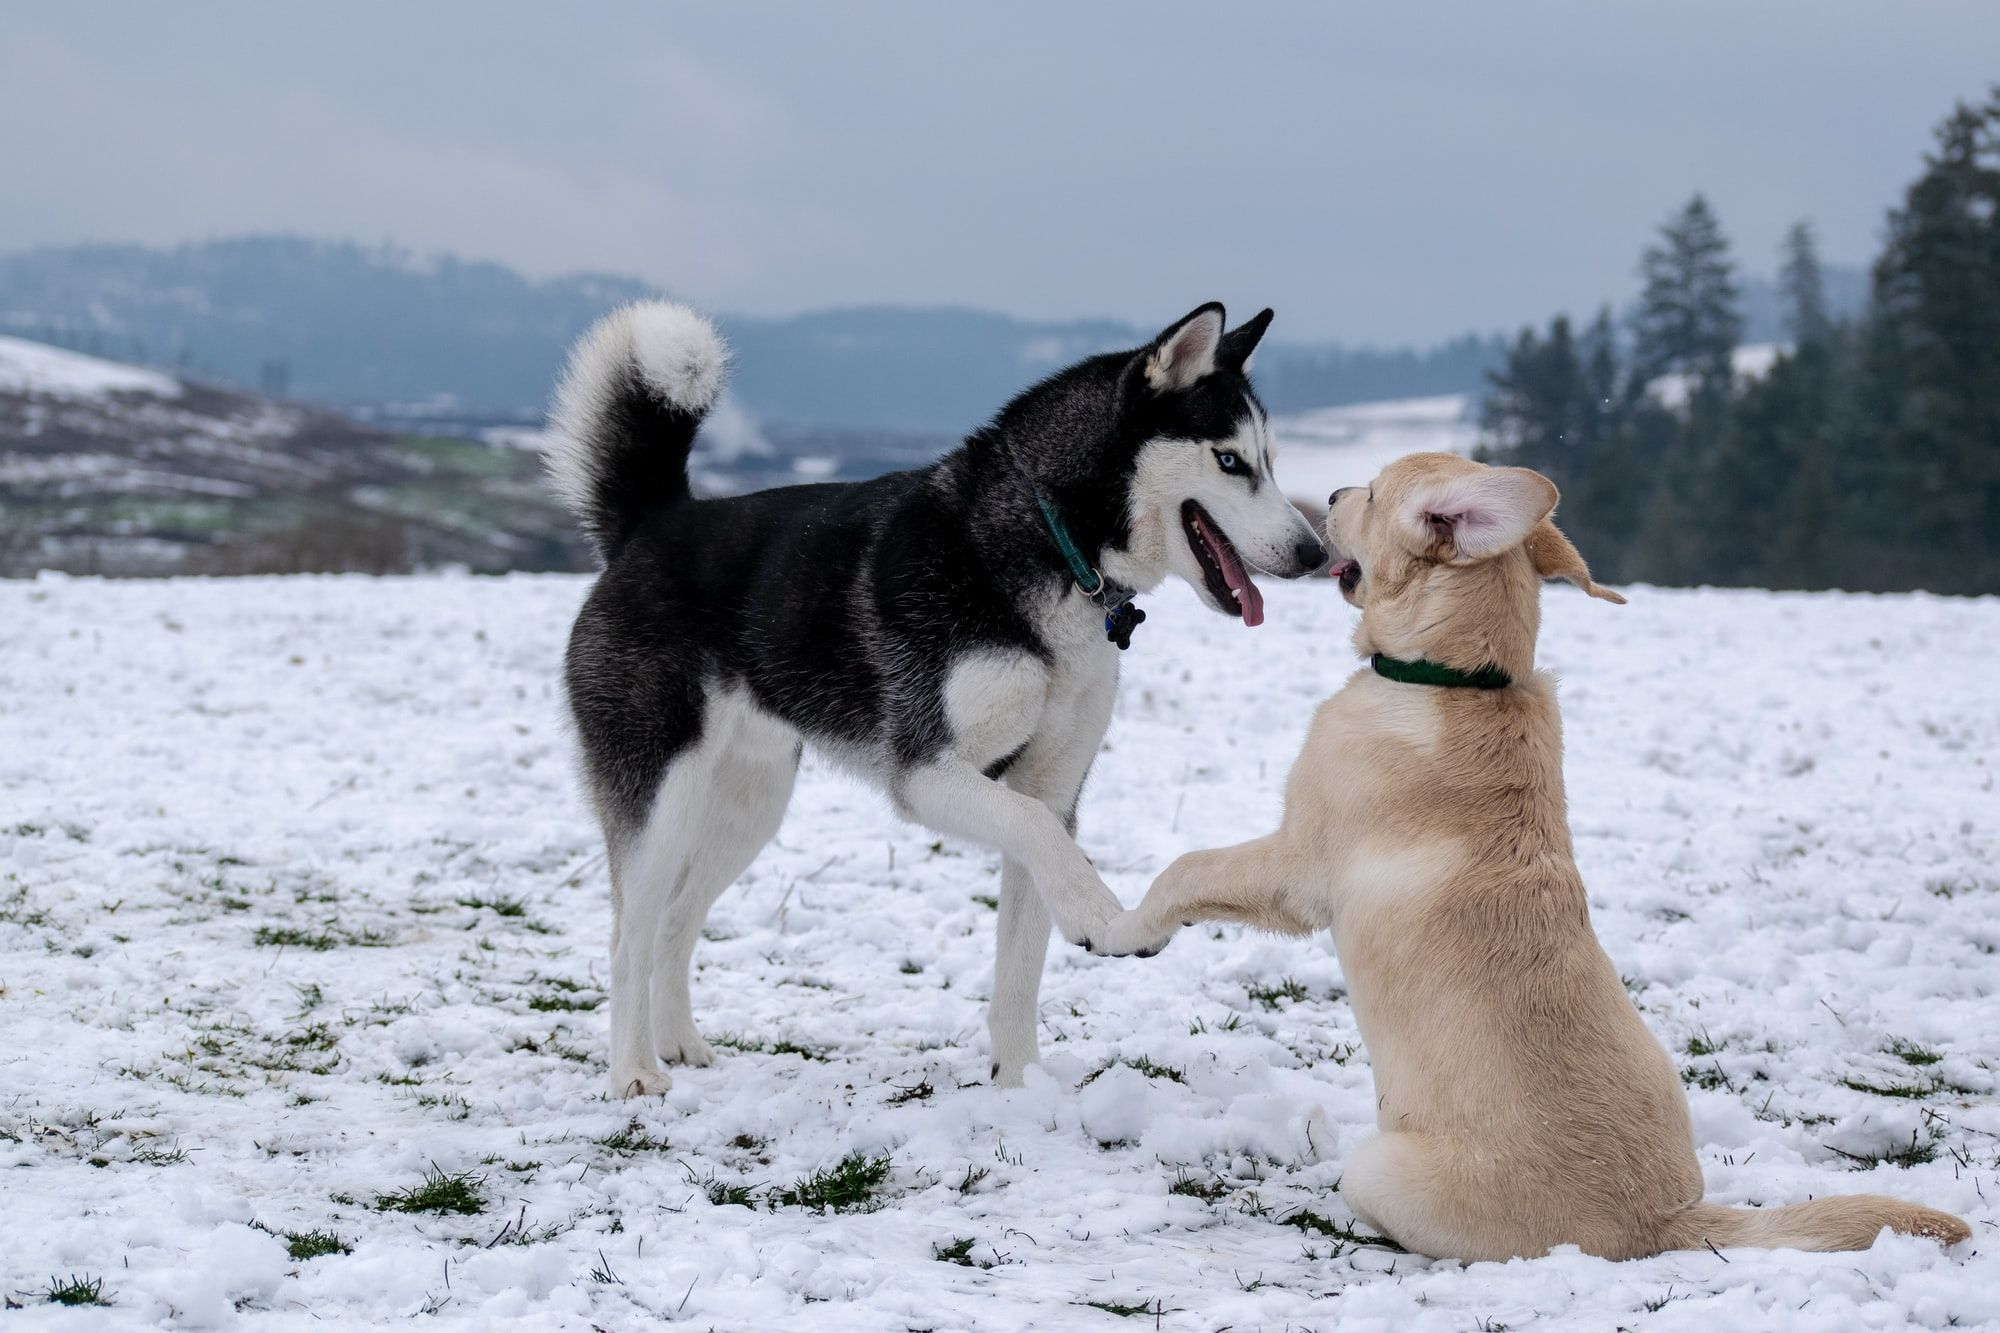 Why Does My Dog Lick My Other Dog's Face?